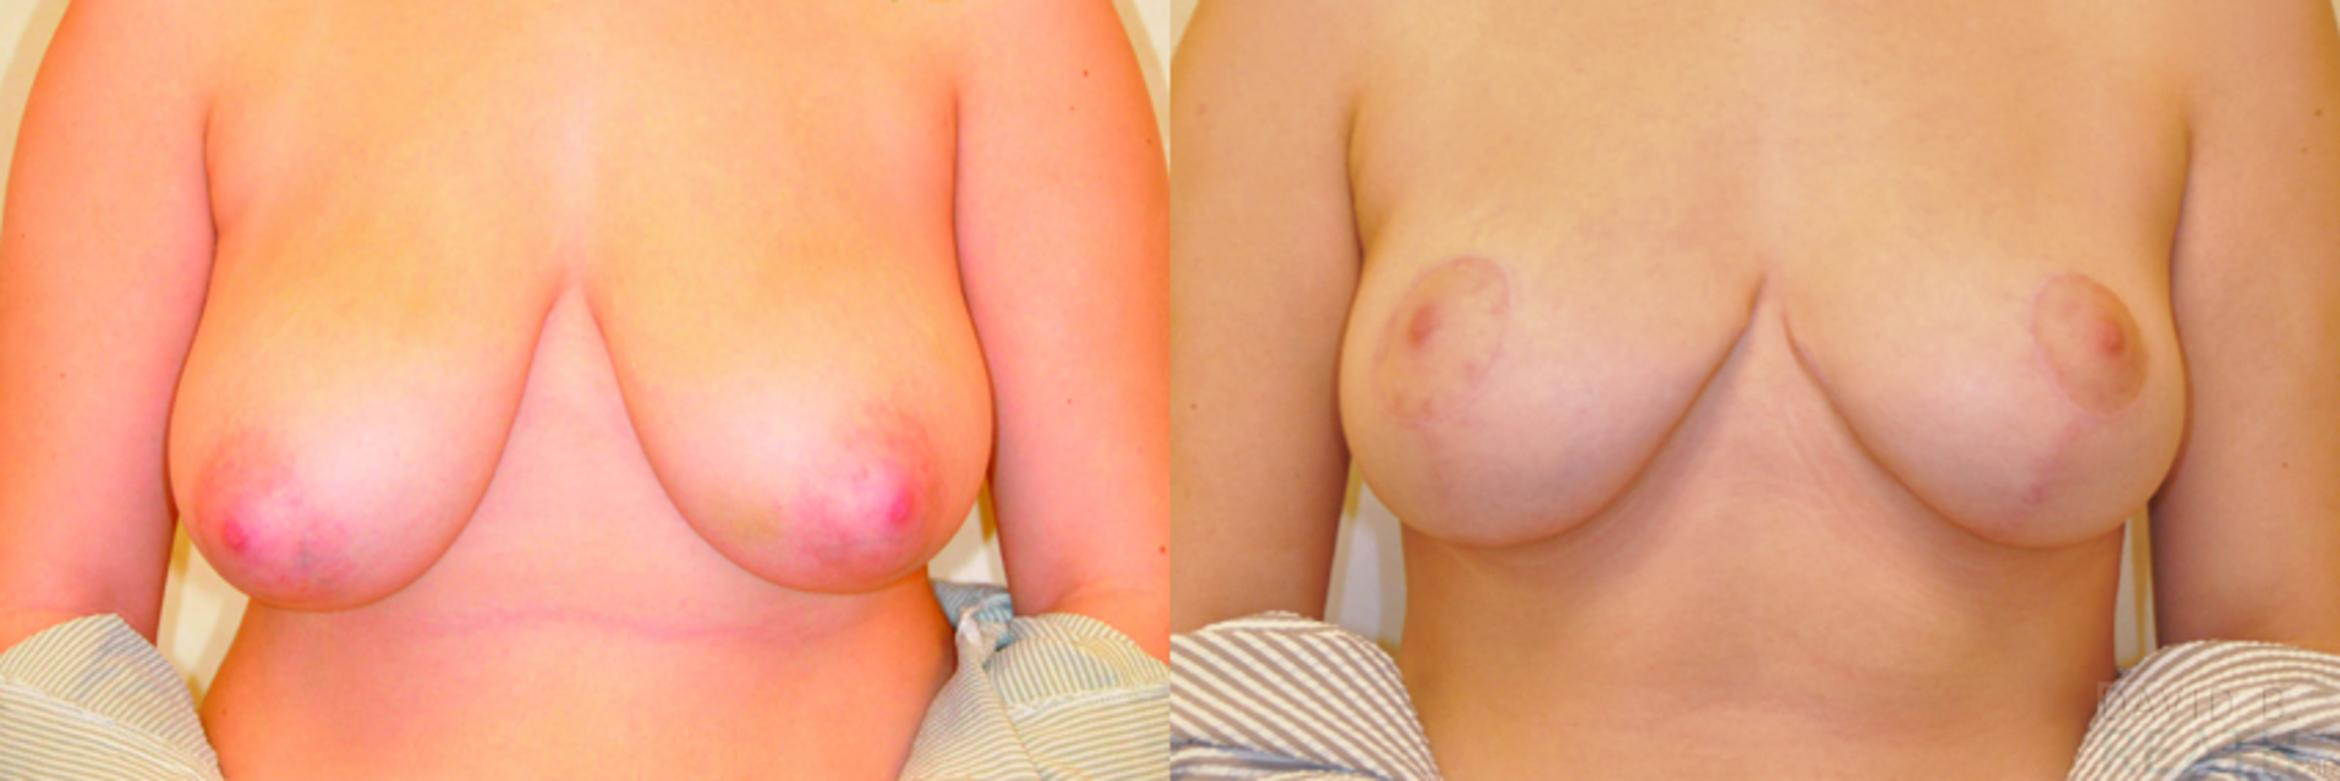 Breast Reduction Before & After Photo | Knoxville, Tennessee | David B. Reath, MD